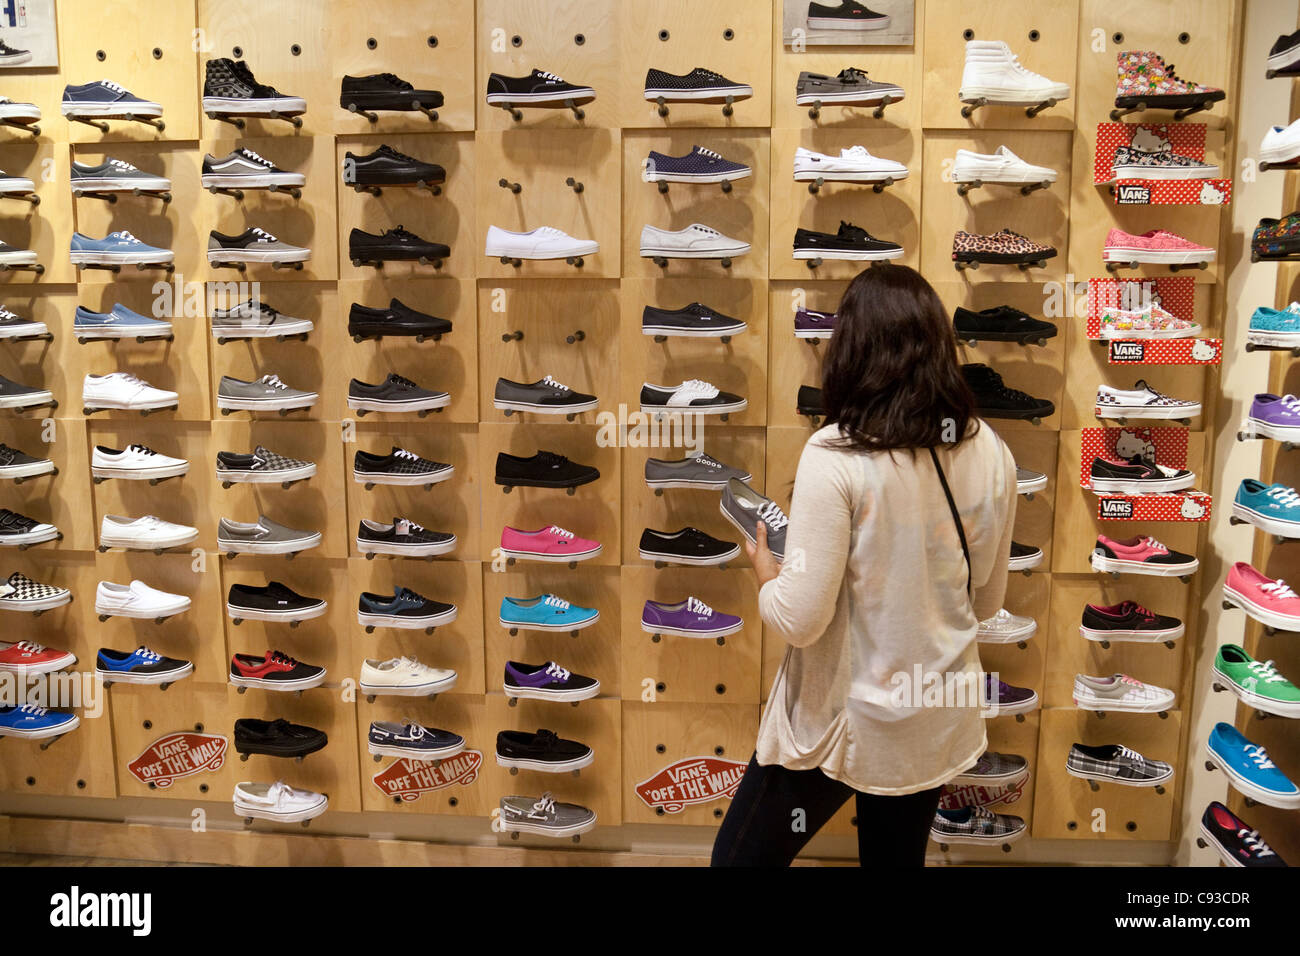 0625adfa336622 Teenage girl buying Vans shoes in a Vans Shoe shop